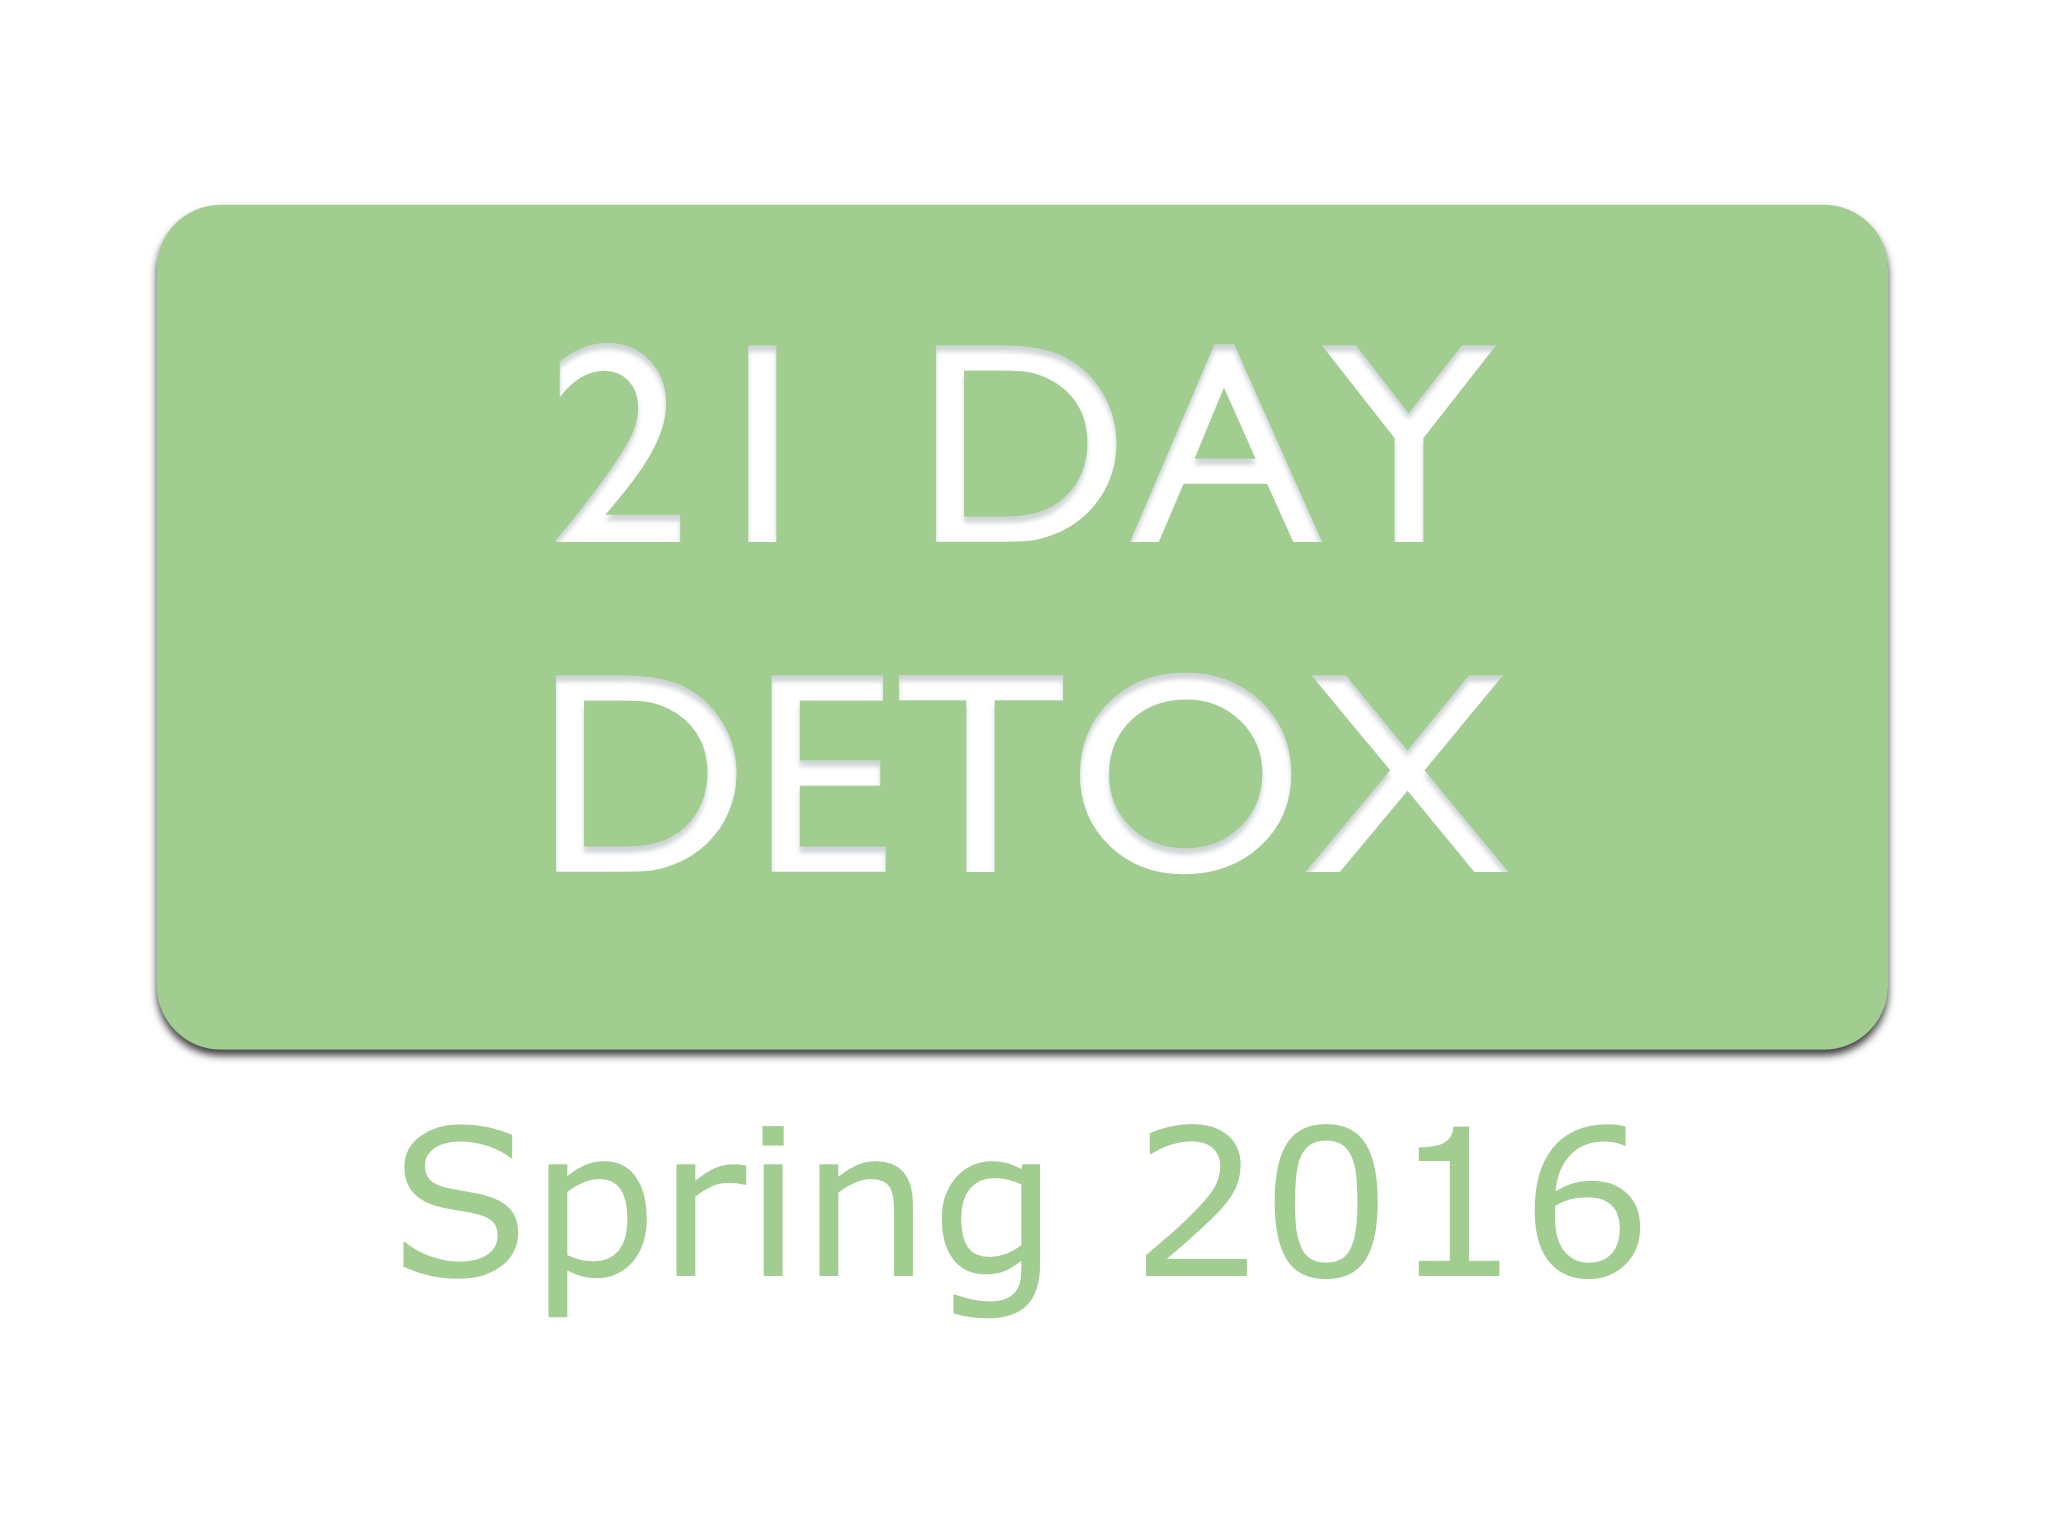 Food Foundation 21 Day Detox Badge Spring 2016 - Preview